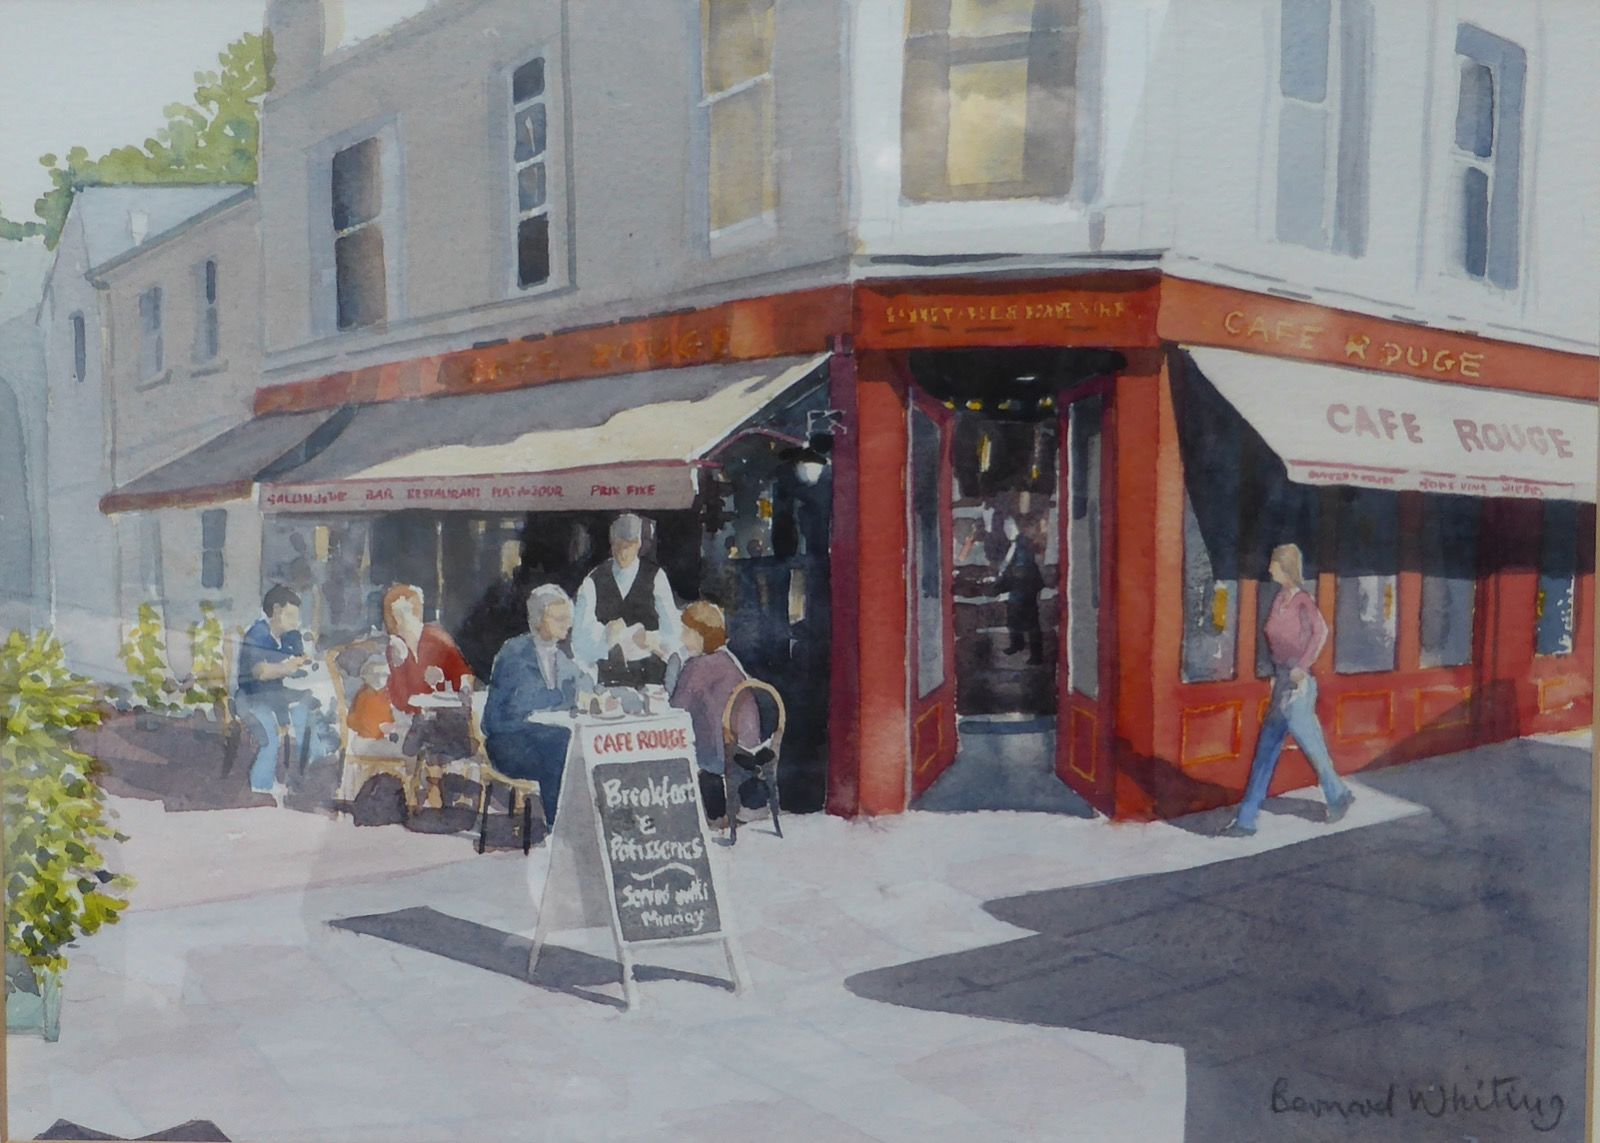 Cafe Rouge, Reigate